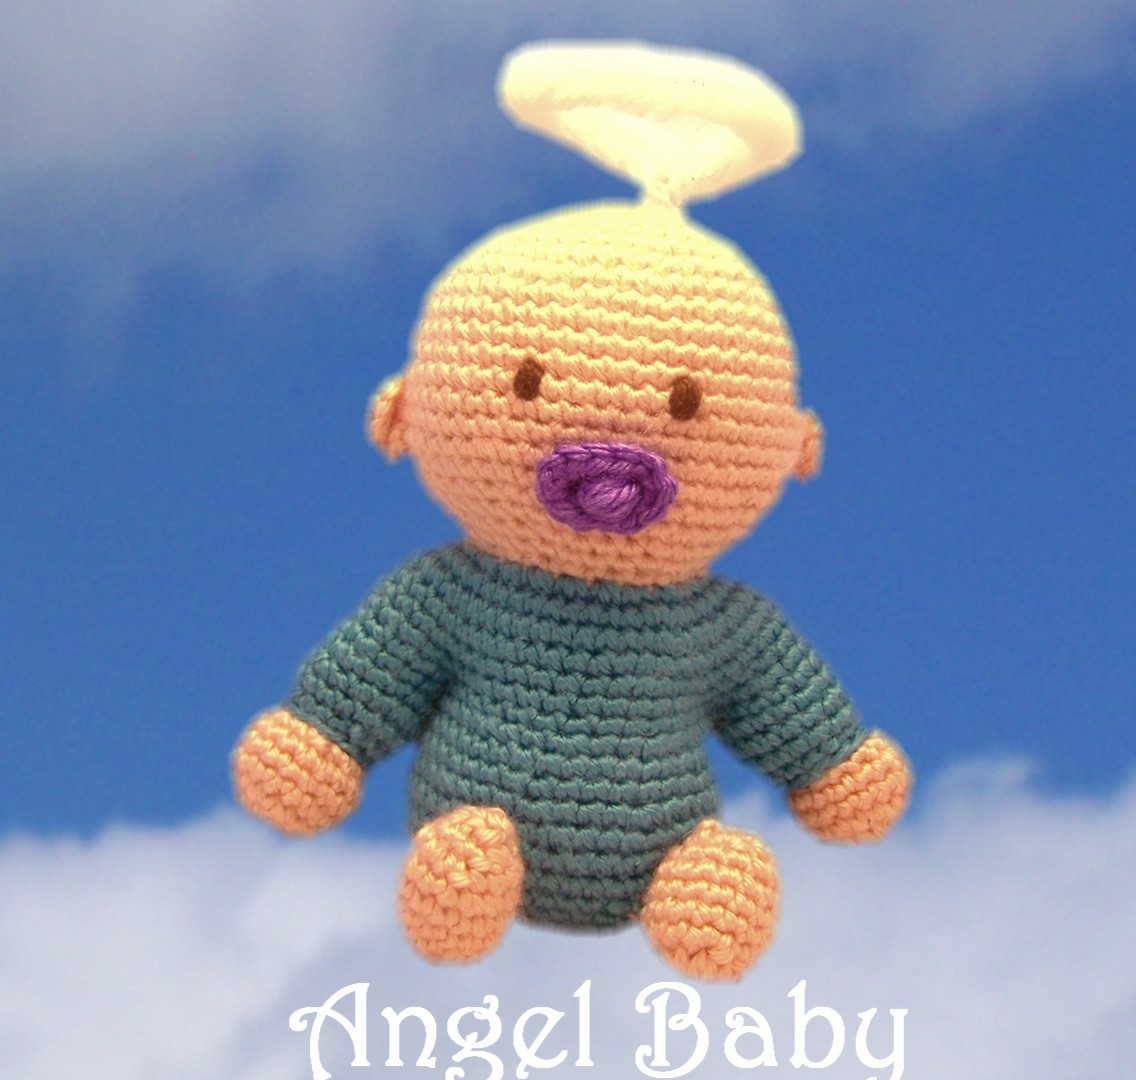 All Free Amigurumi Patterns : 2000 Free Amigurumi Patterns: Baby